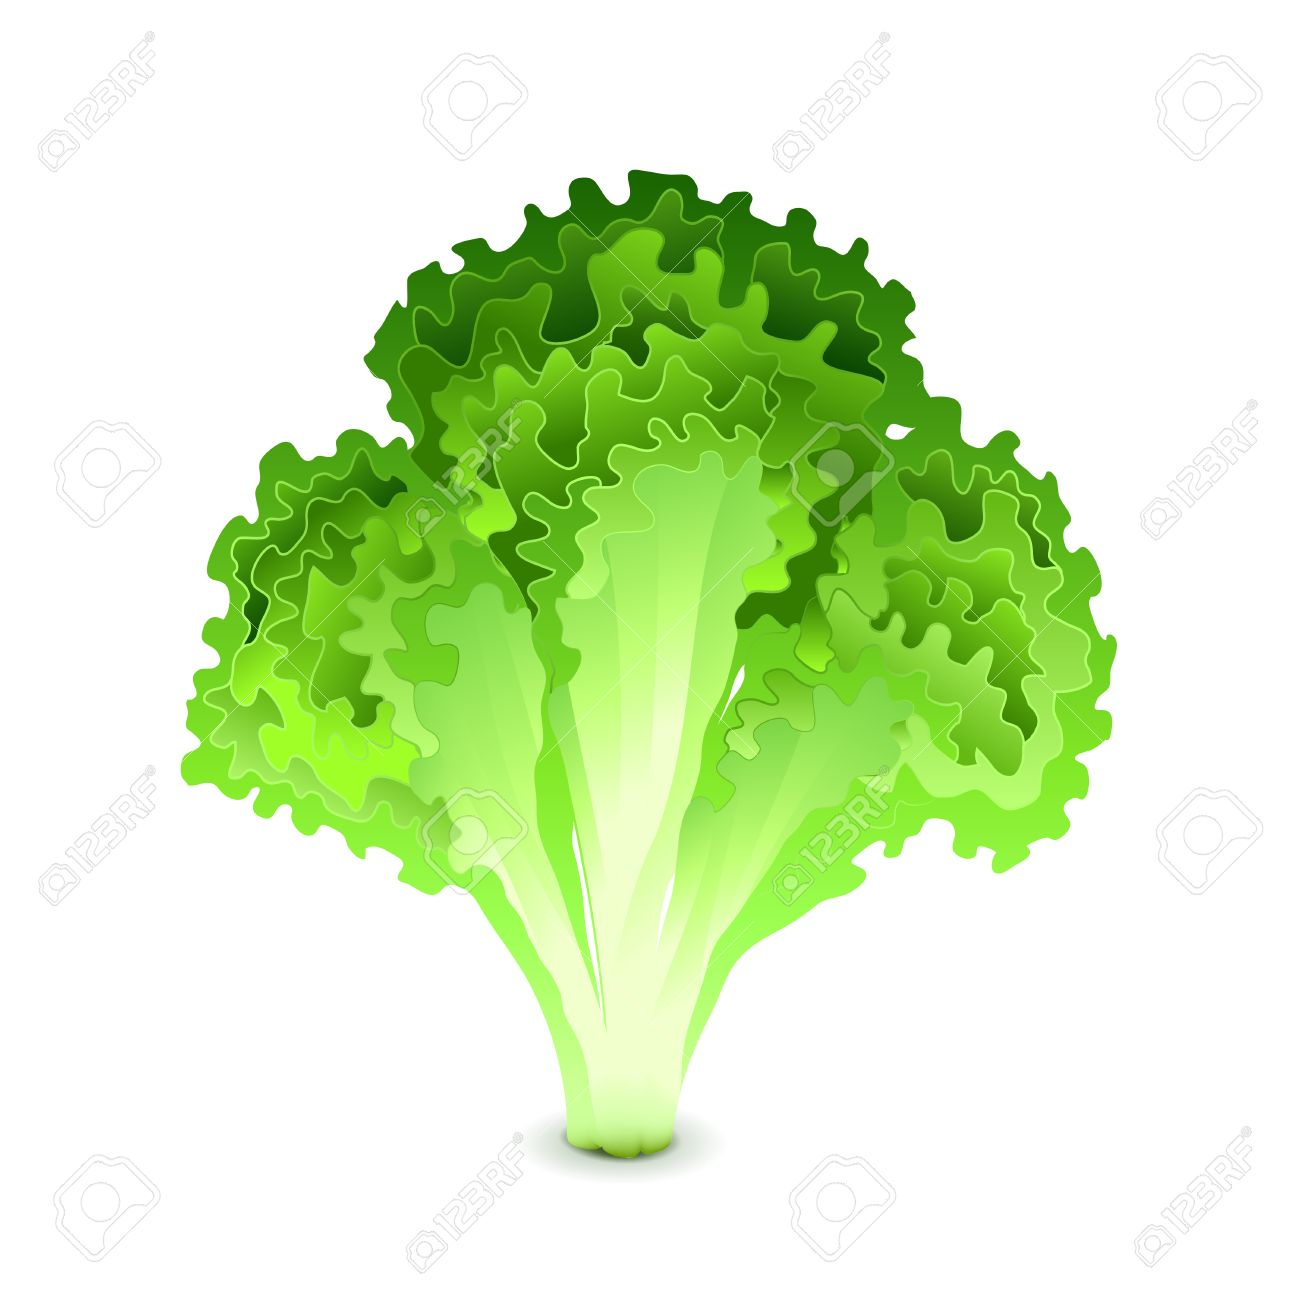 green salad leaves vector illustration royalty free cliparts, vectors, and  stock illustration. image 73427978.  123rf